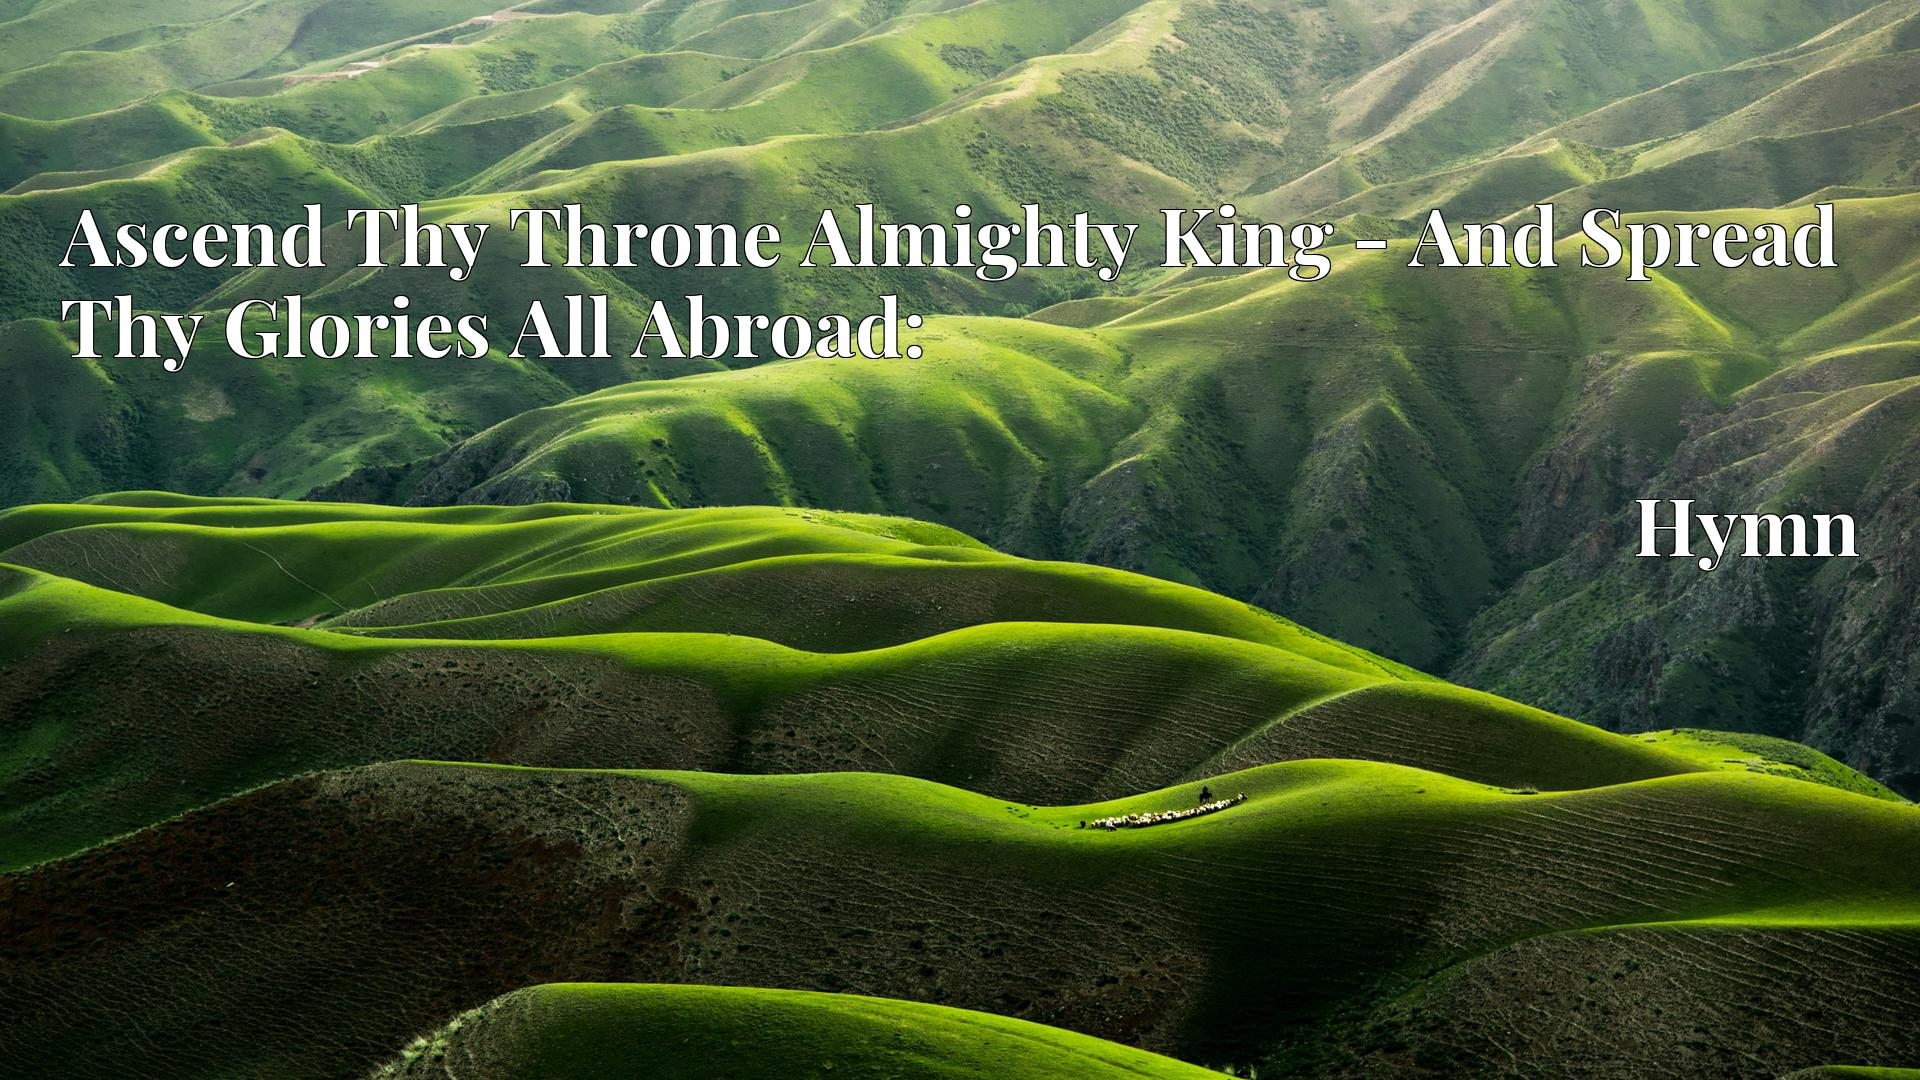 Ascend Thy Throne Almighty King - And Spread Thy Glories All Abroad: - Hymn